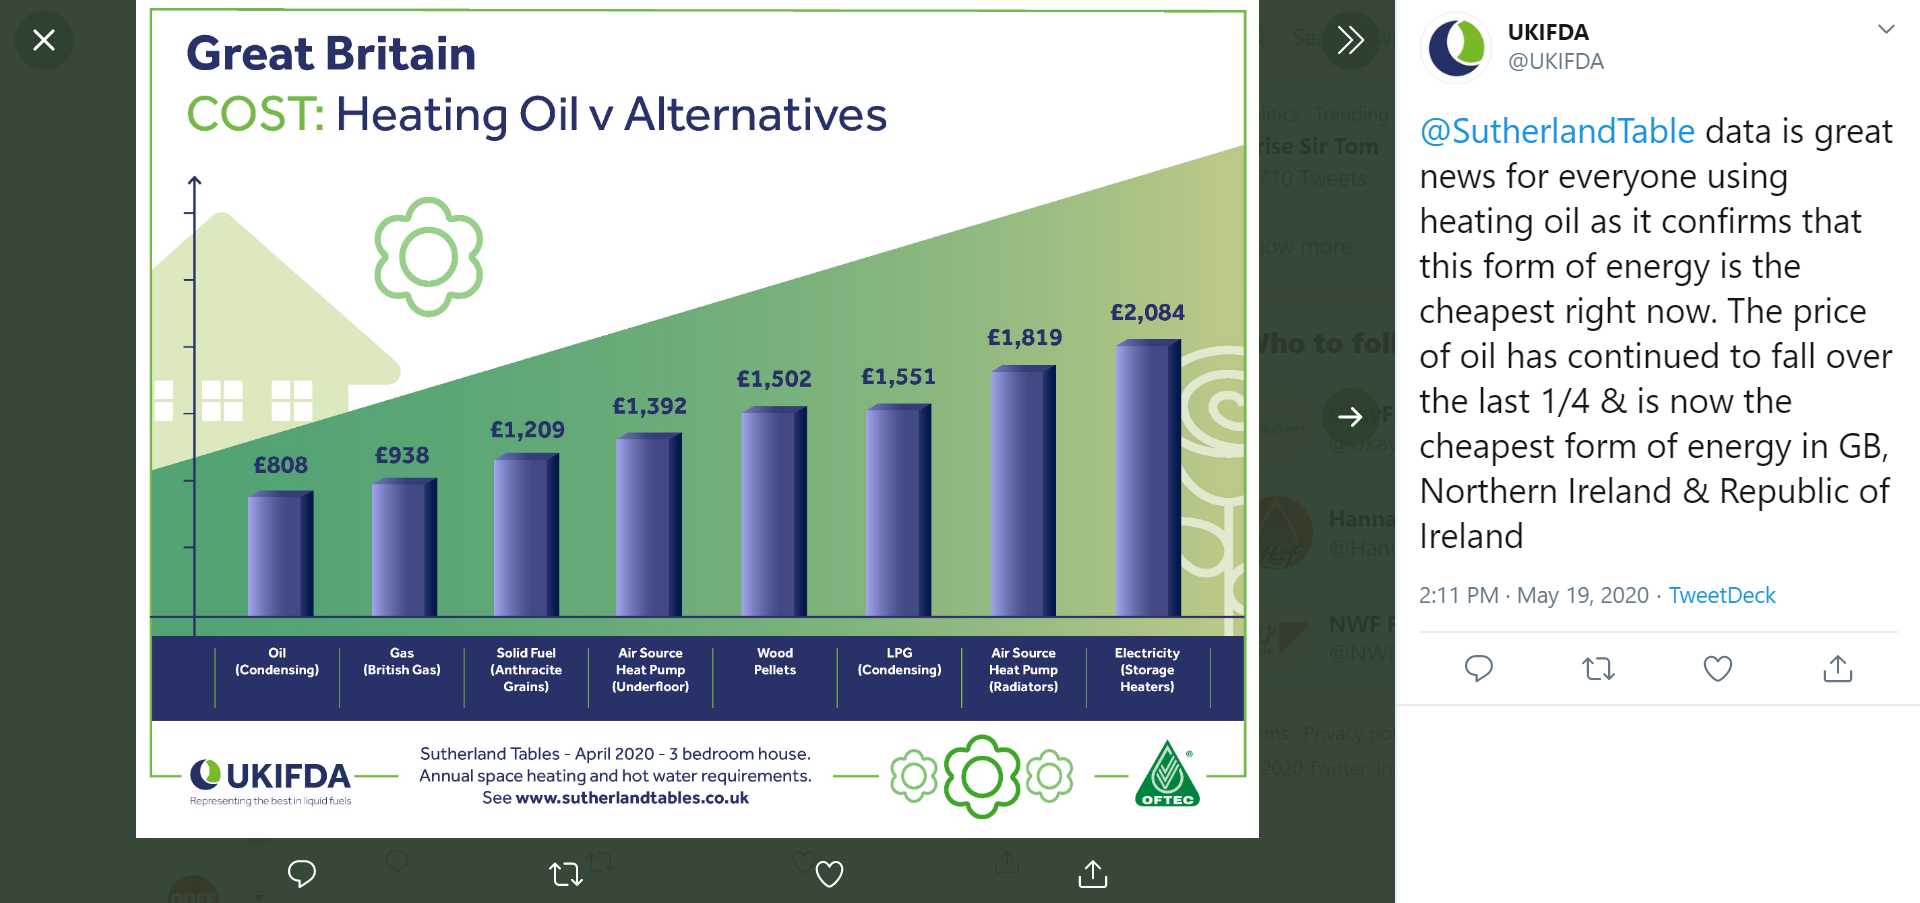 Sutherland tables tweeted by UKIFDA April 2020 Heating Oil v Alternatives